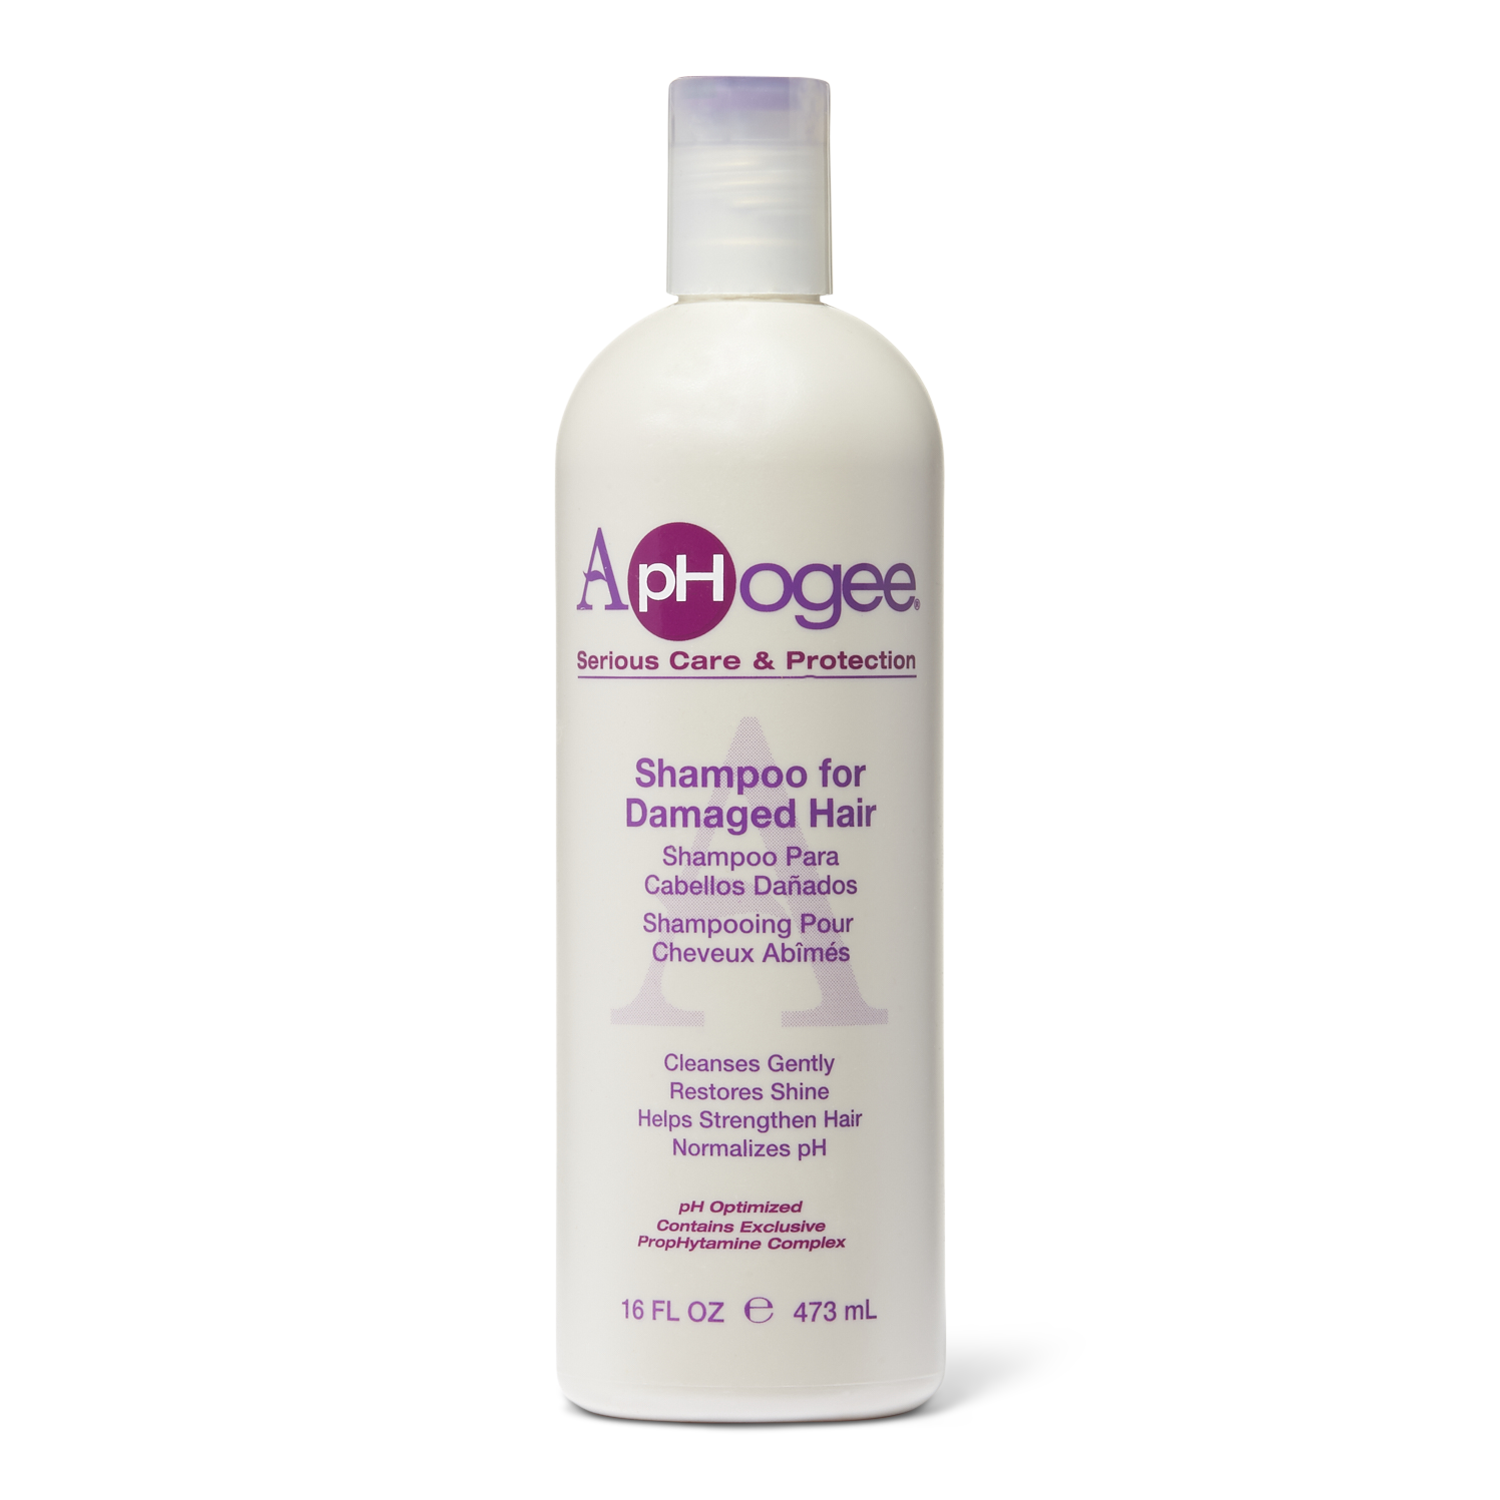 Aphogee Damaged Hair Shampoo Shampoo Sally Beauty